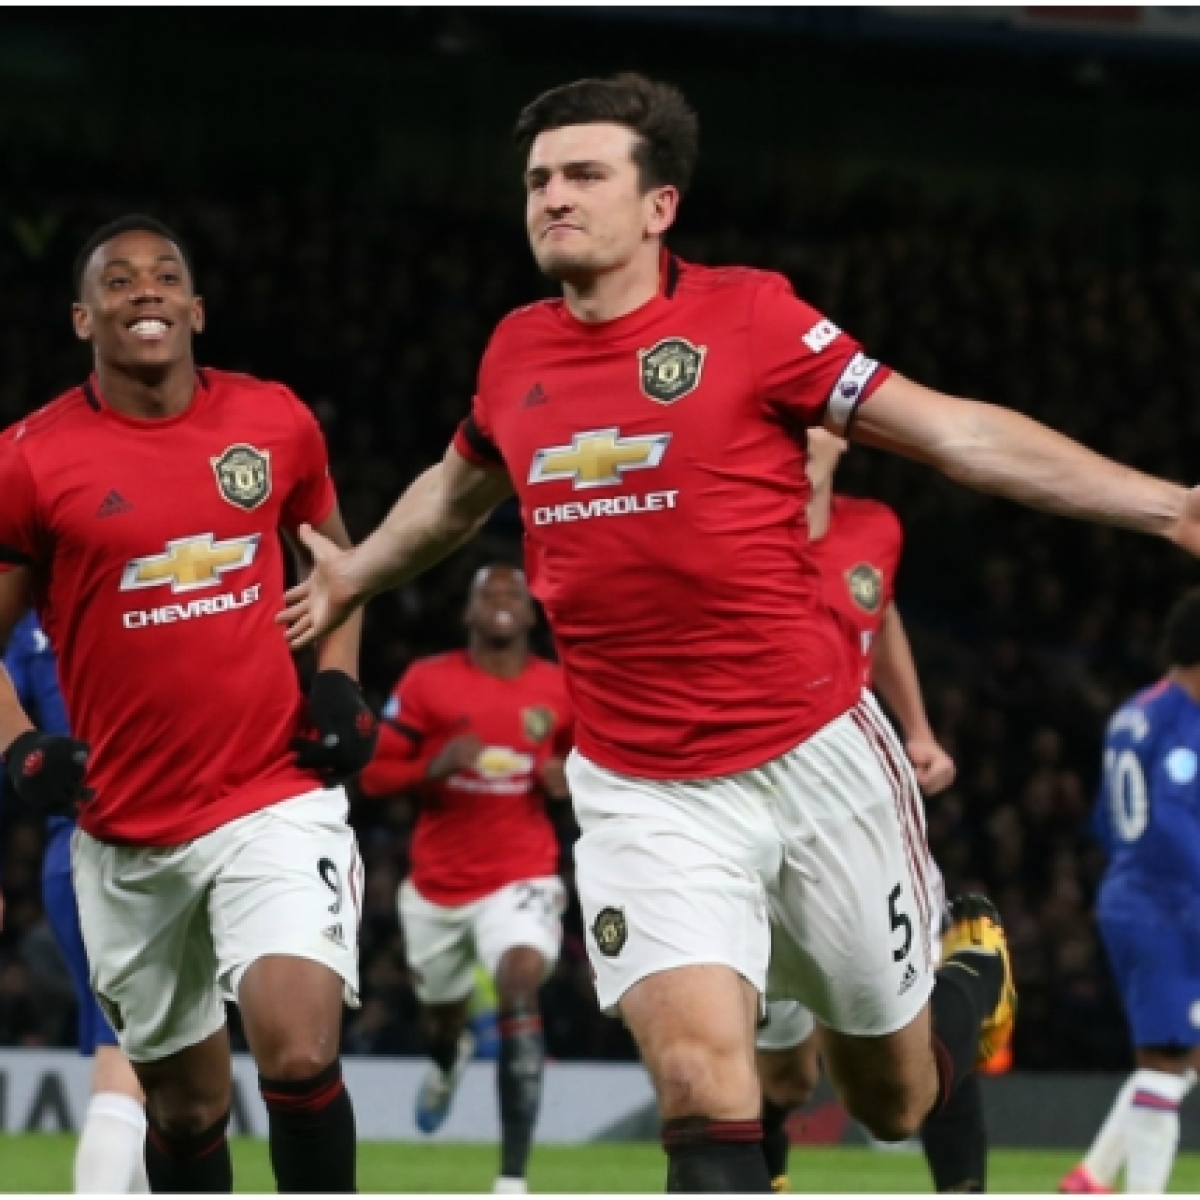 Harry Maguire scores late to send Manchester United to FA Cup semi-finals